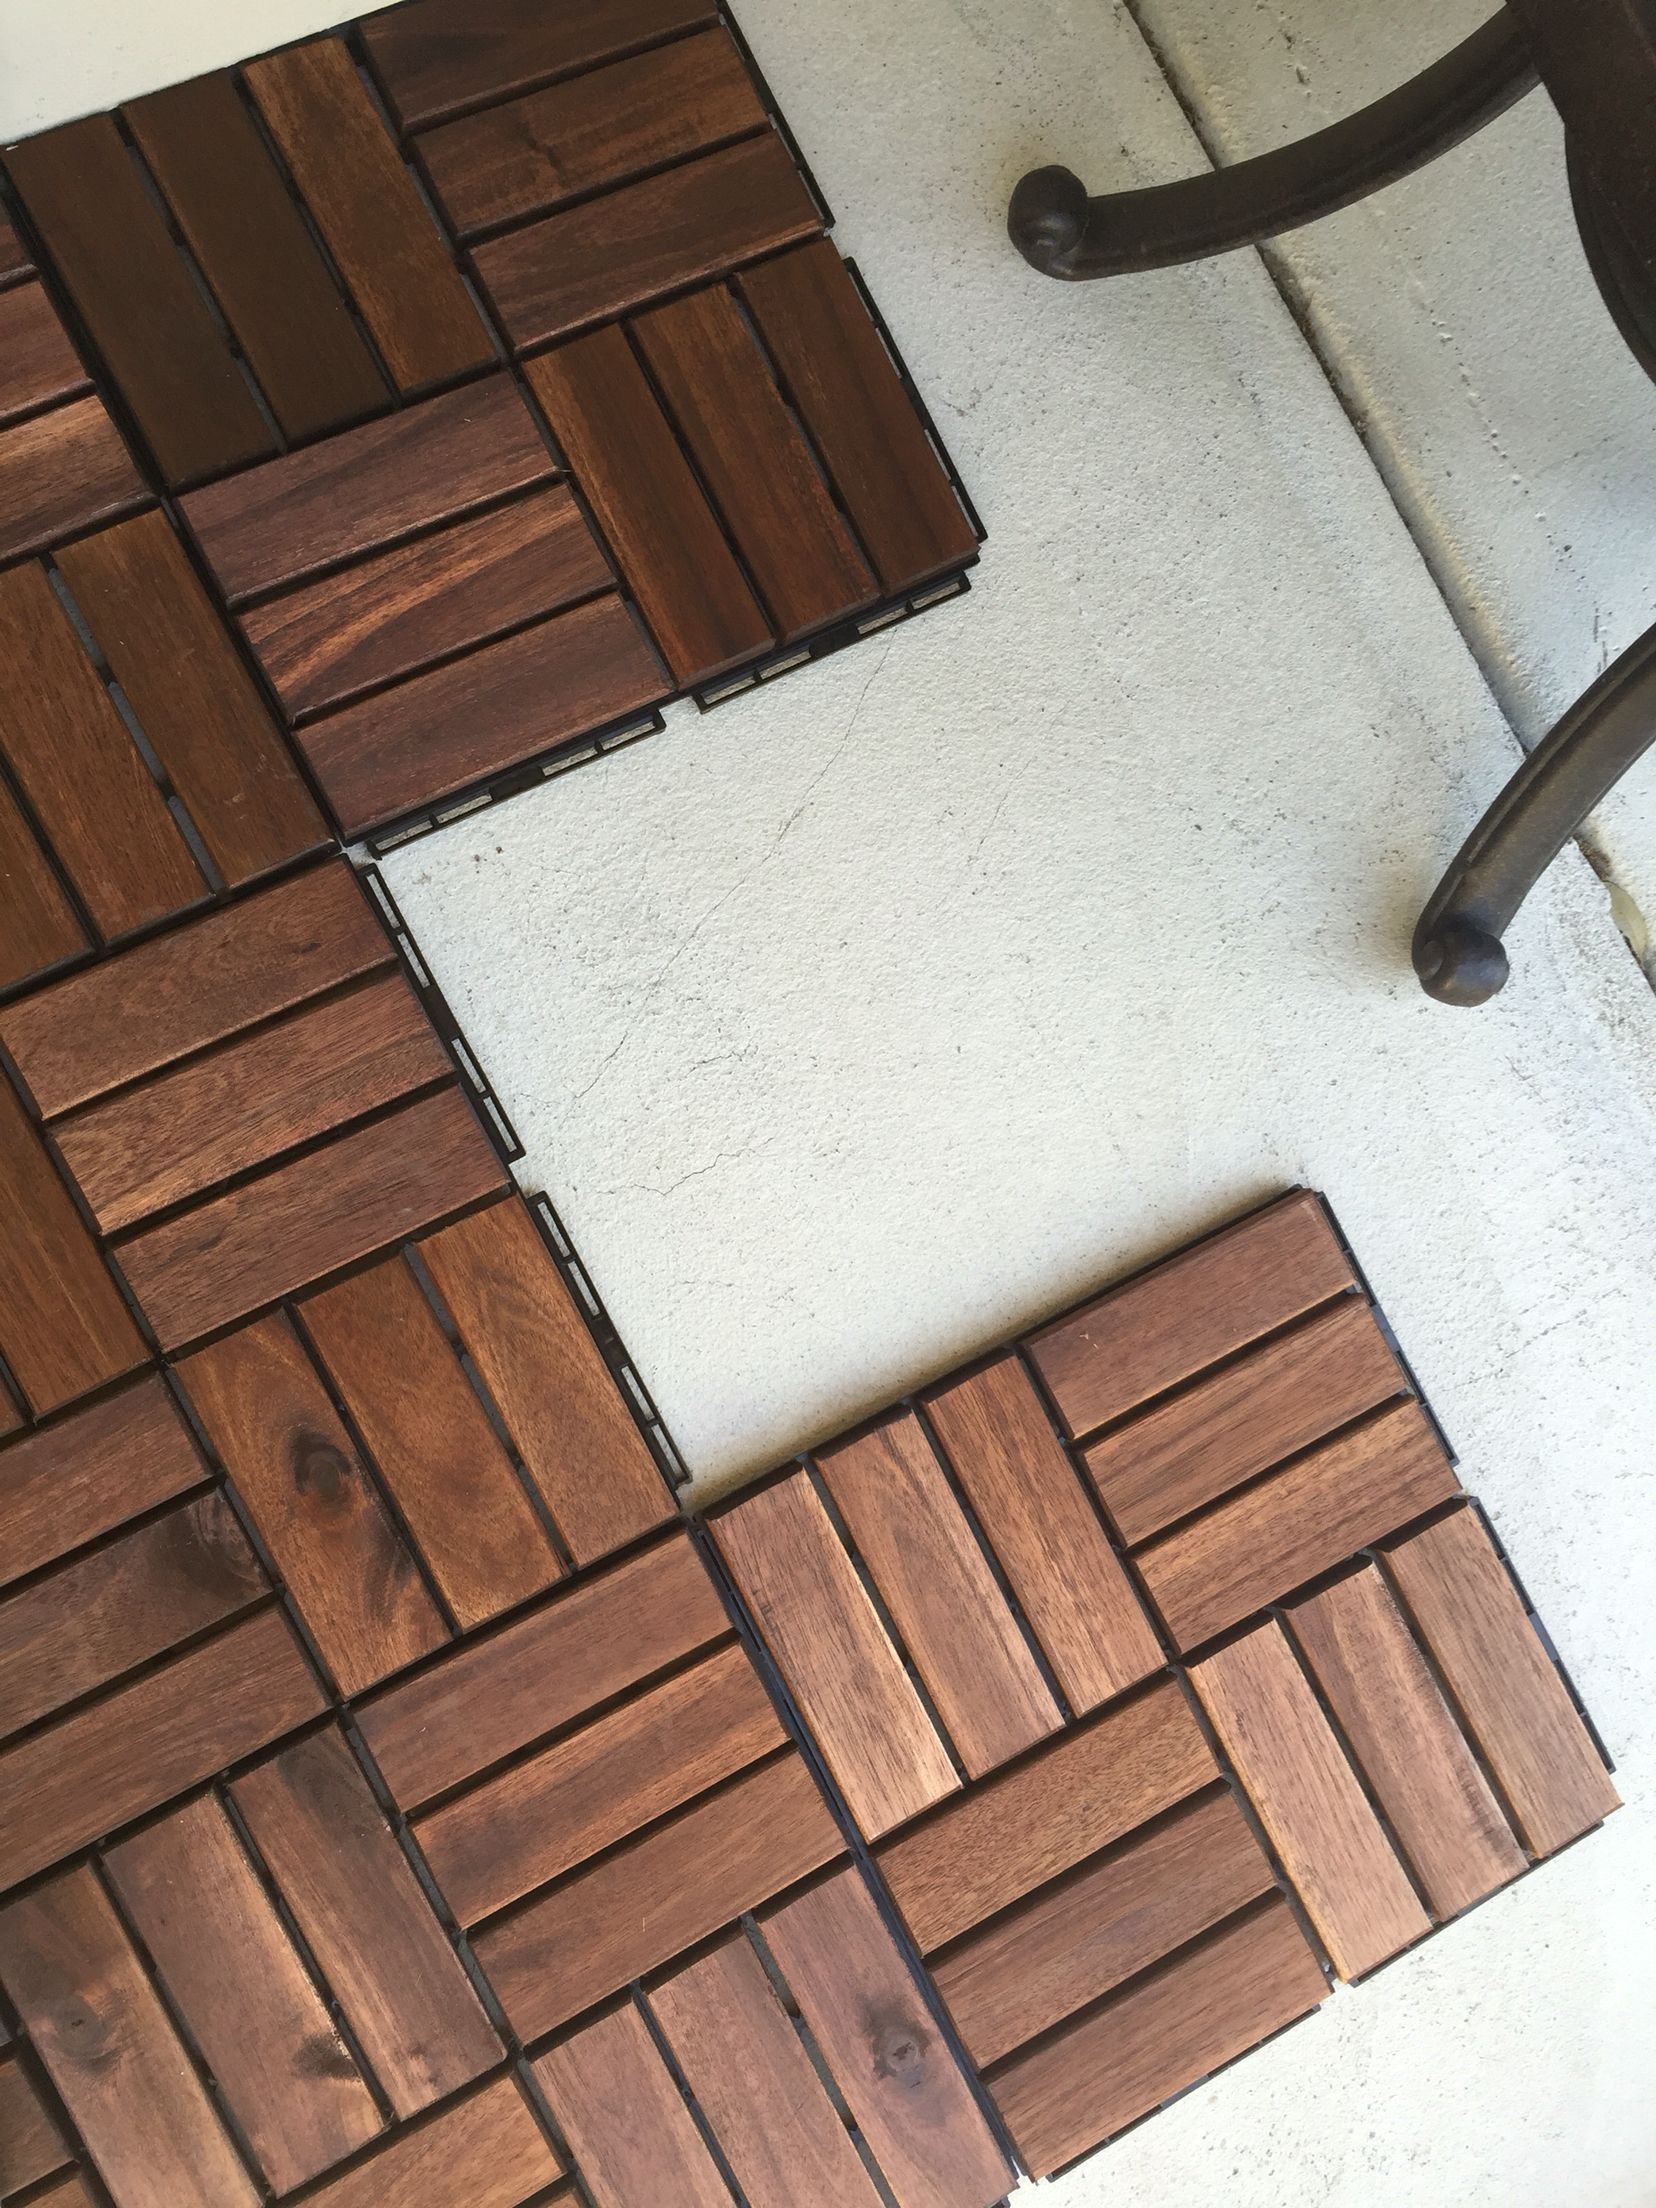 Awesome The IKEA Runnen Decking Tiles Snap Together And Were Pretty Easy To Install.